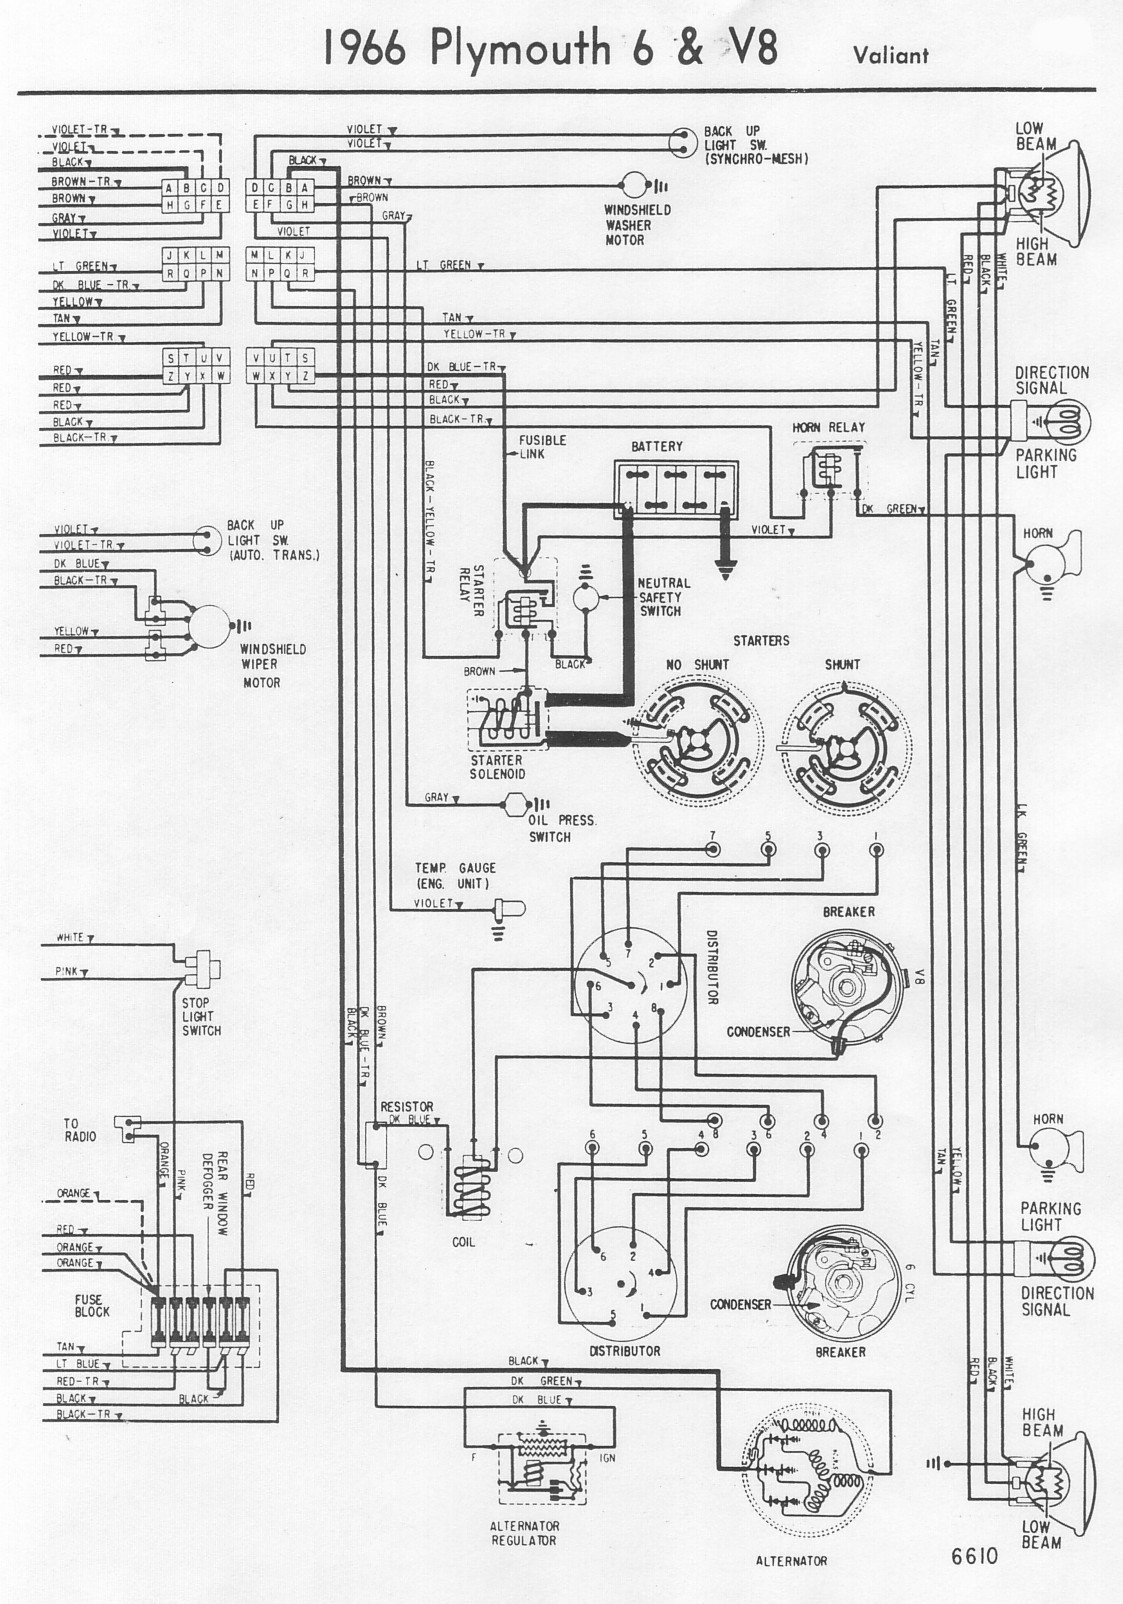 68 Plymouth Wiring Diagram - Wiring Diagram Data on plymouth parts diagrams, plymouth interior diagrams, plymouth transmission diagrams, plymouth engine,